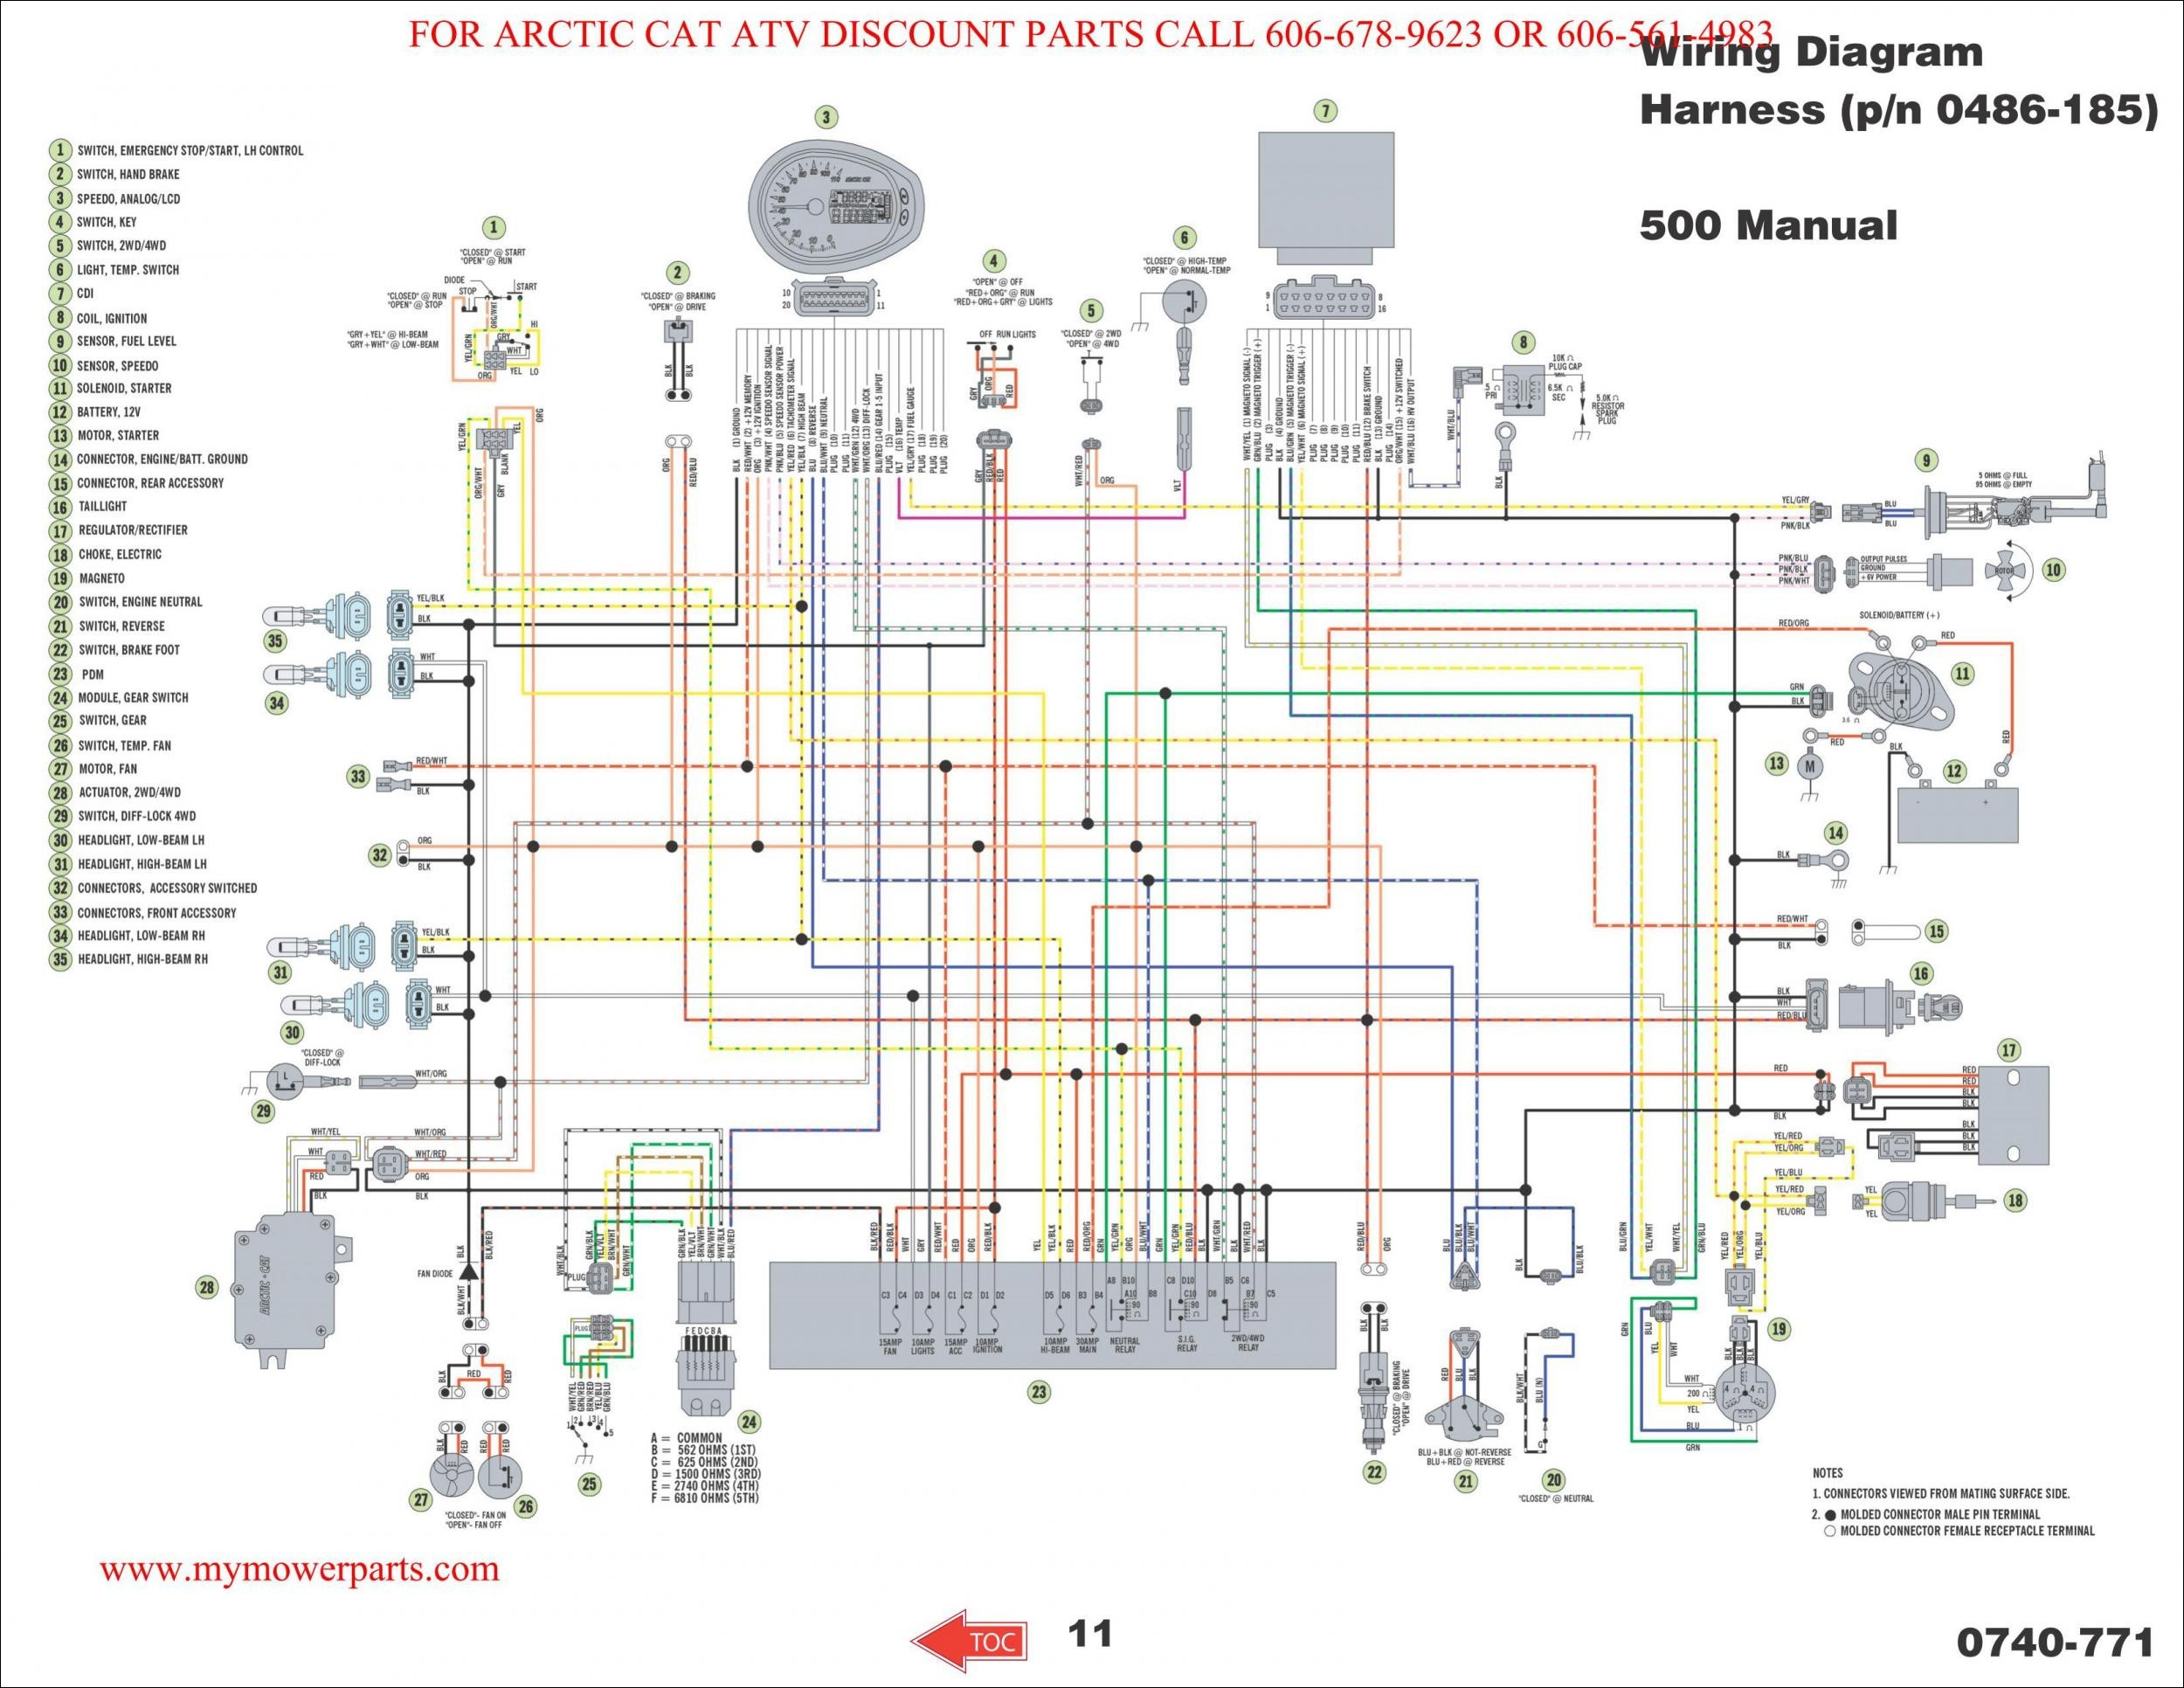 polaris trail boss 330 wiring diagram basic wiring diagram u2022 rh rnetcomputer co Polaris Ranger Wiring Diagram 2008 polaris trail boss 330 wiring diagram